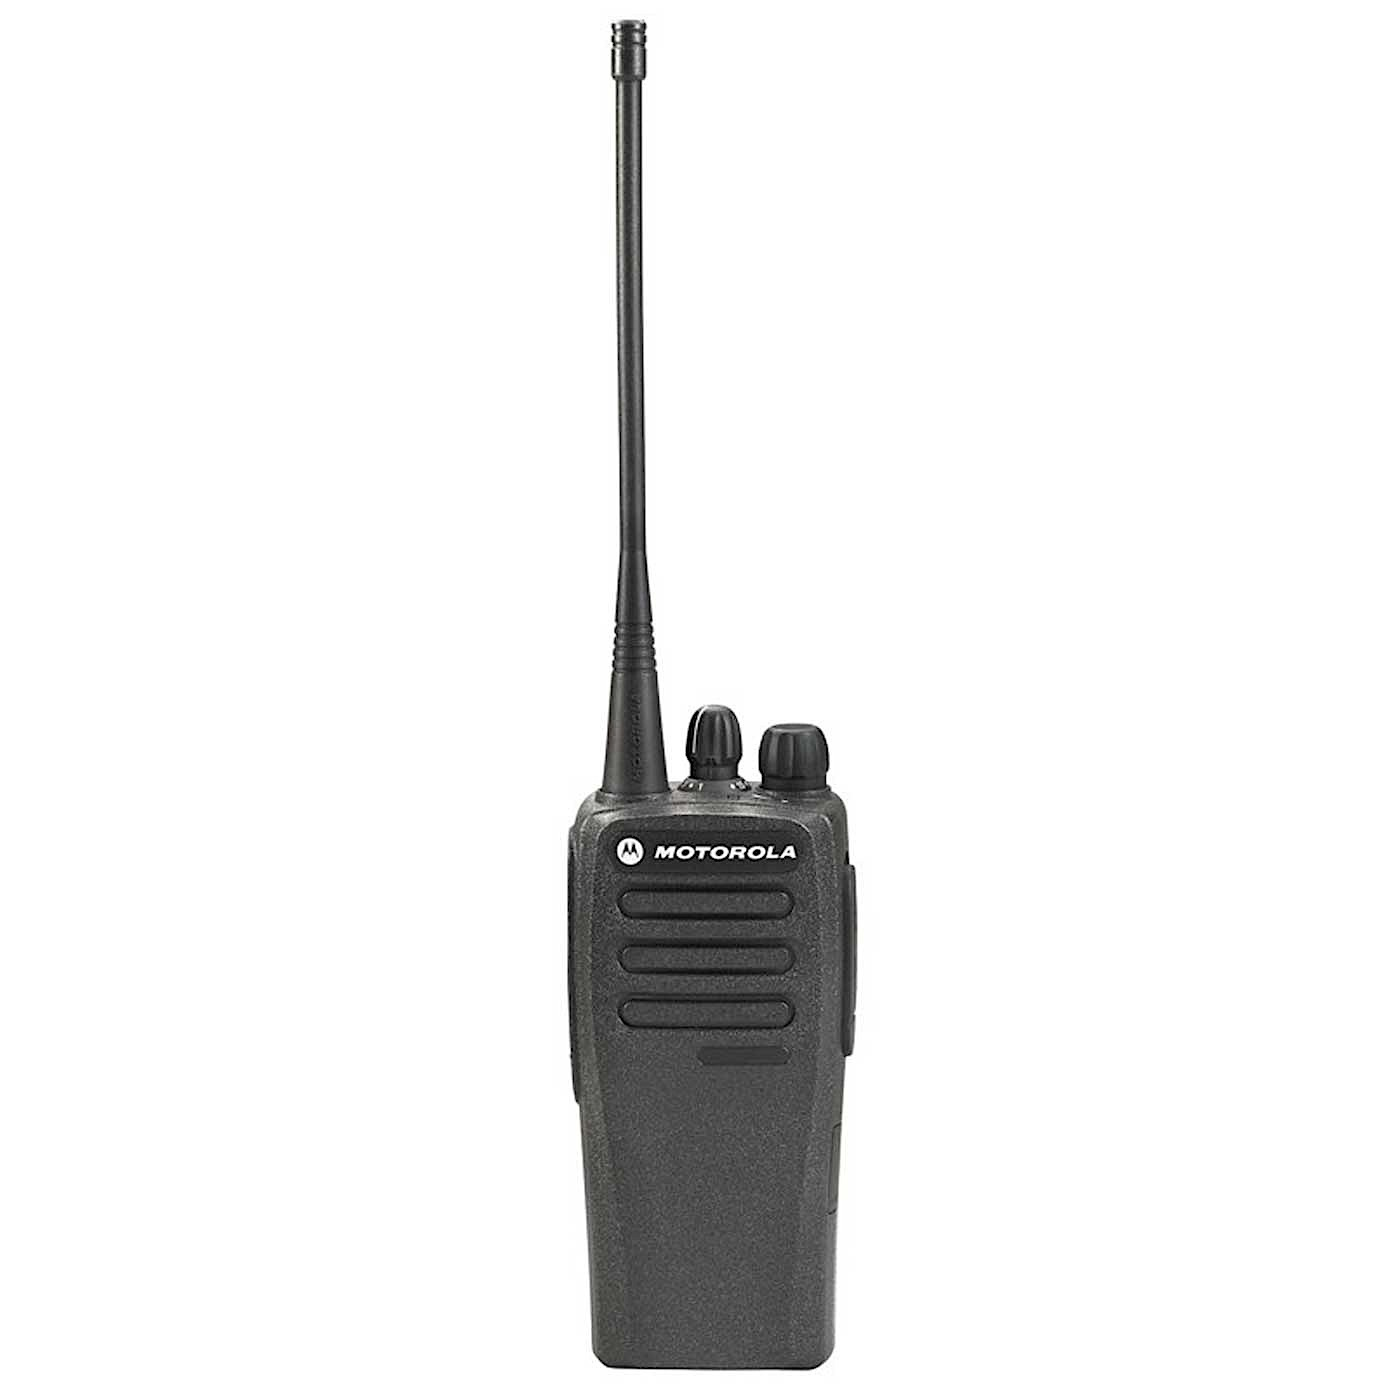 Motorola 8ch CP200d Digital Walkie Talkie